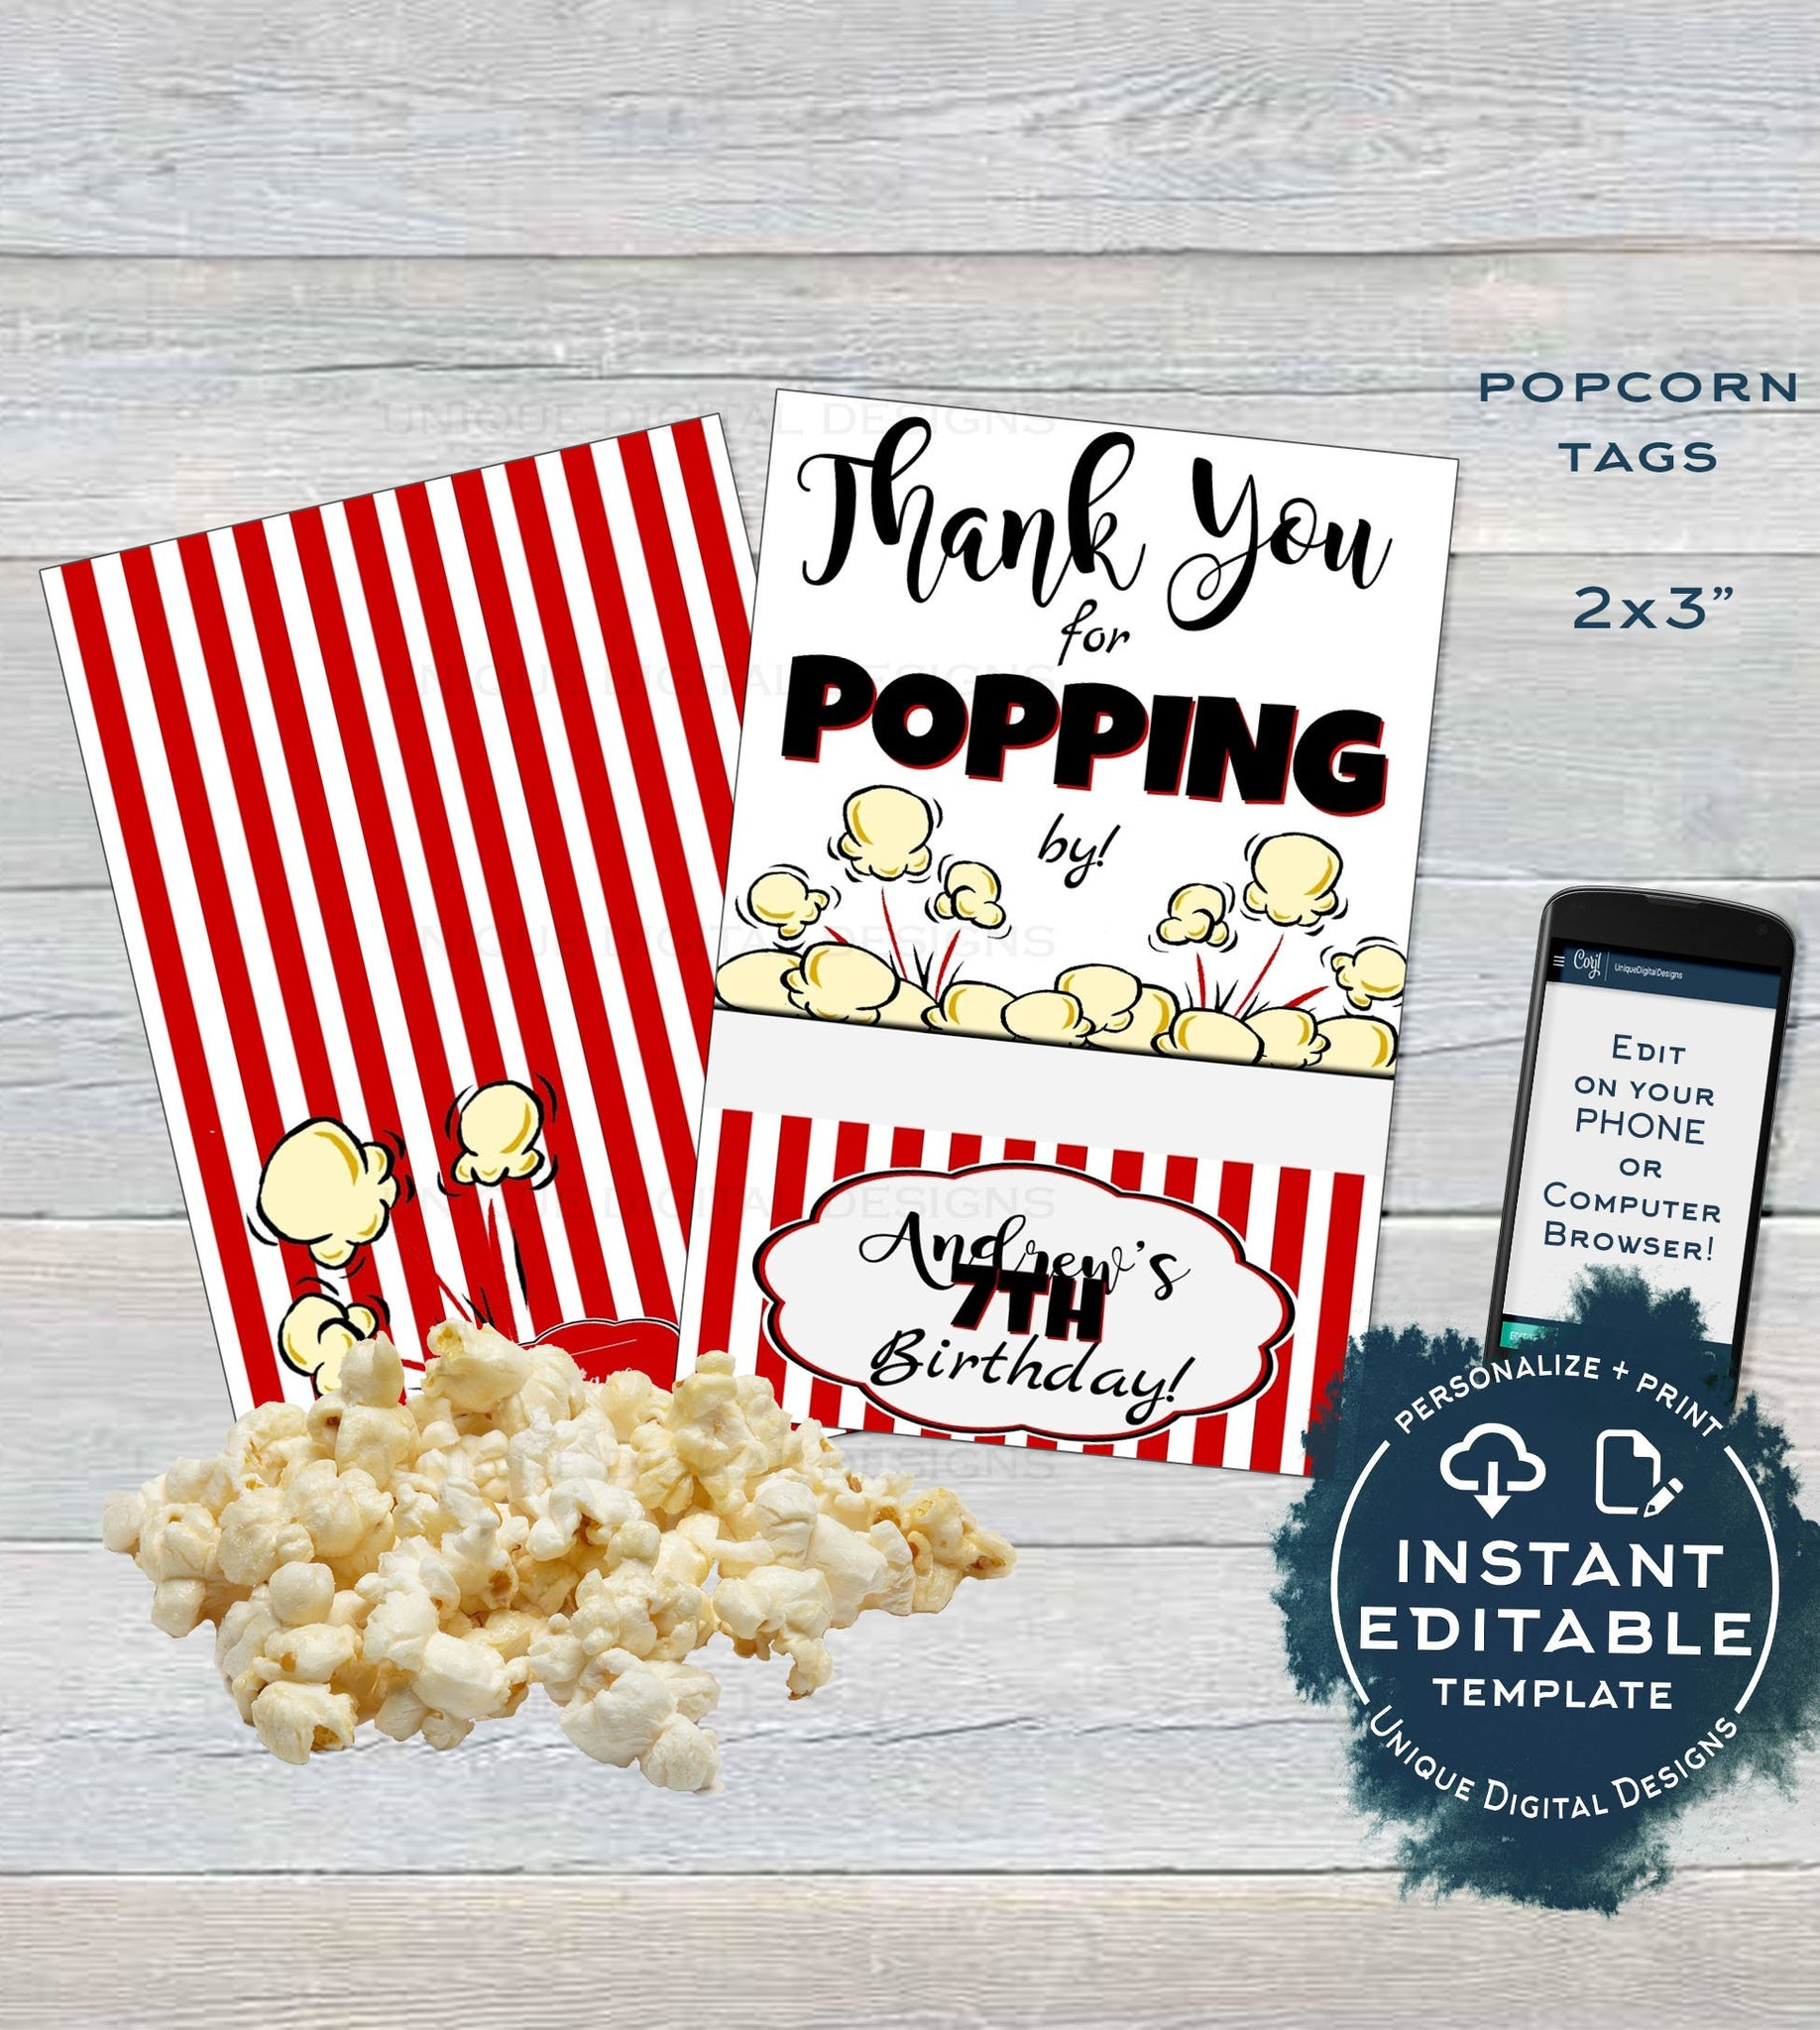 photo relating to Thanks for Popping by Printable referred to as Popcorn Tag, Editable Popcorn Social gathering Want Labels, Foodstuff Tag